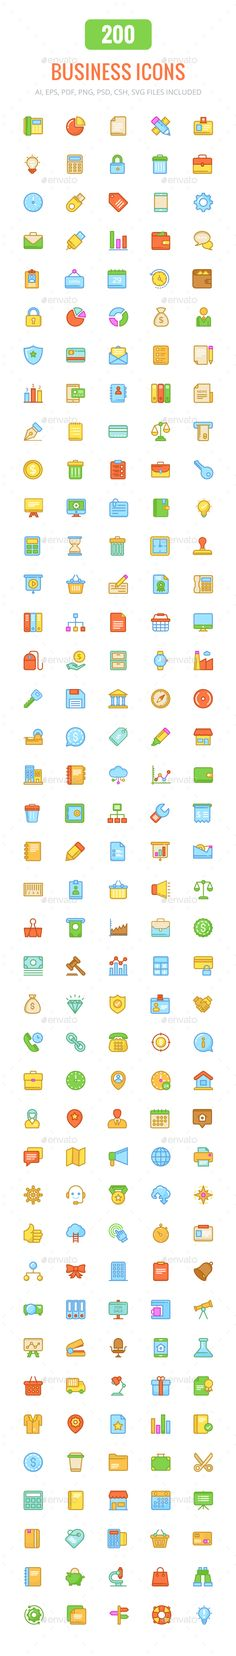 200 Business Colored and Line Icons